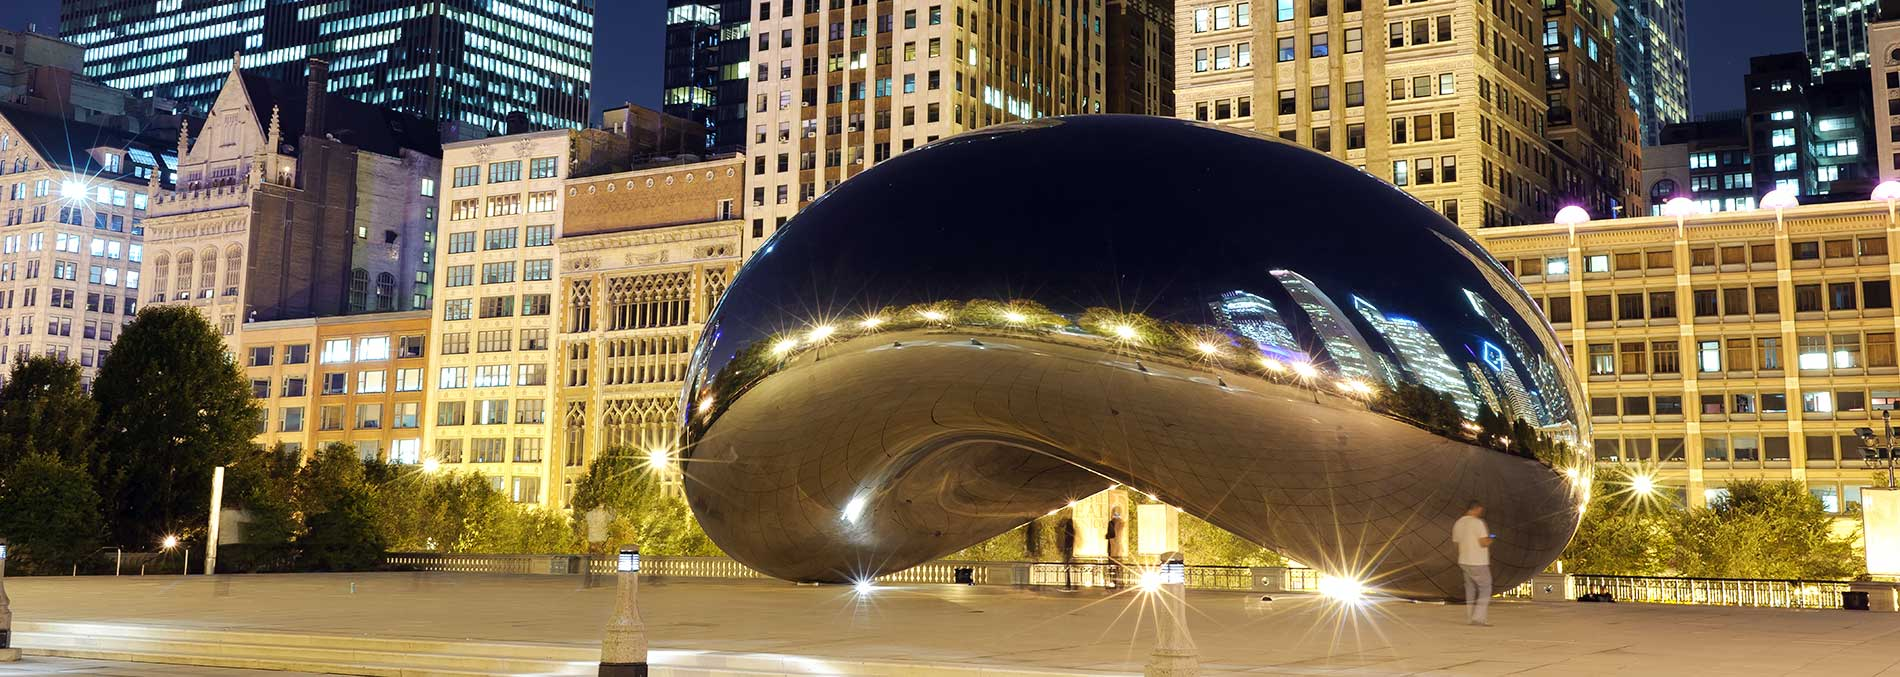 Chicago-Bean1